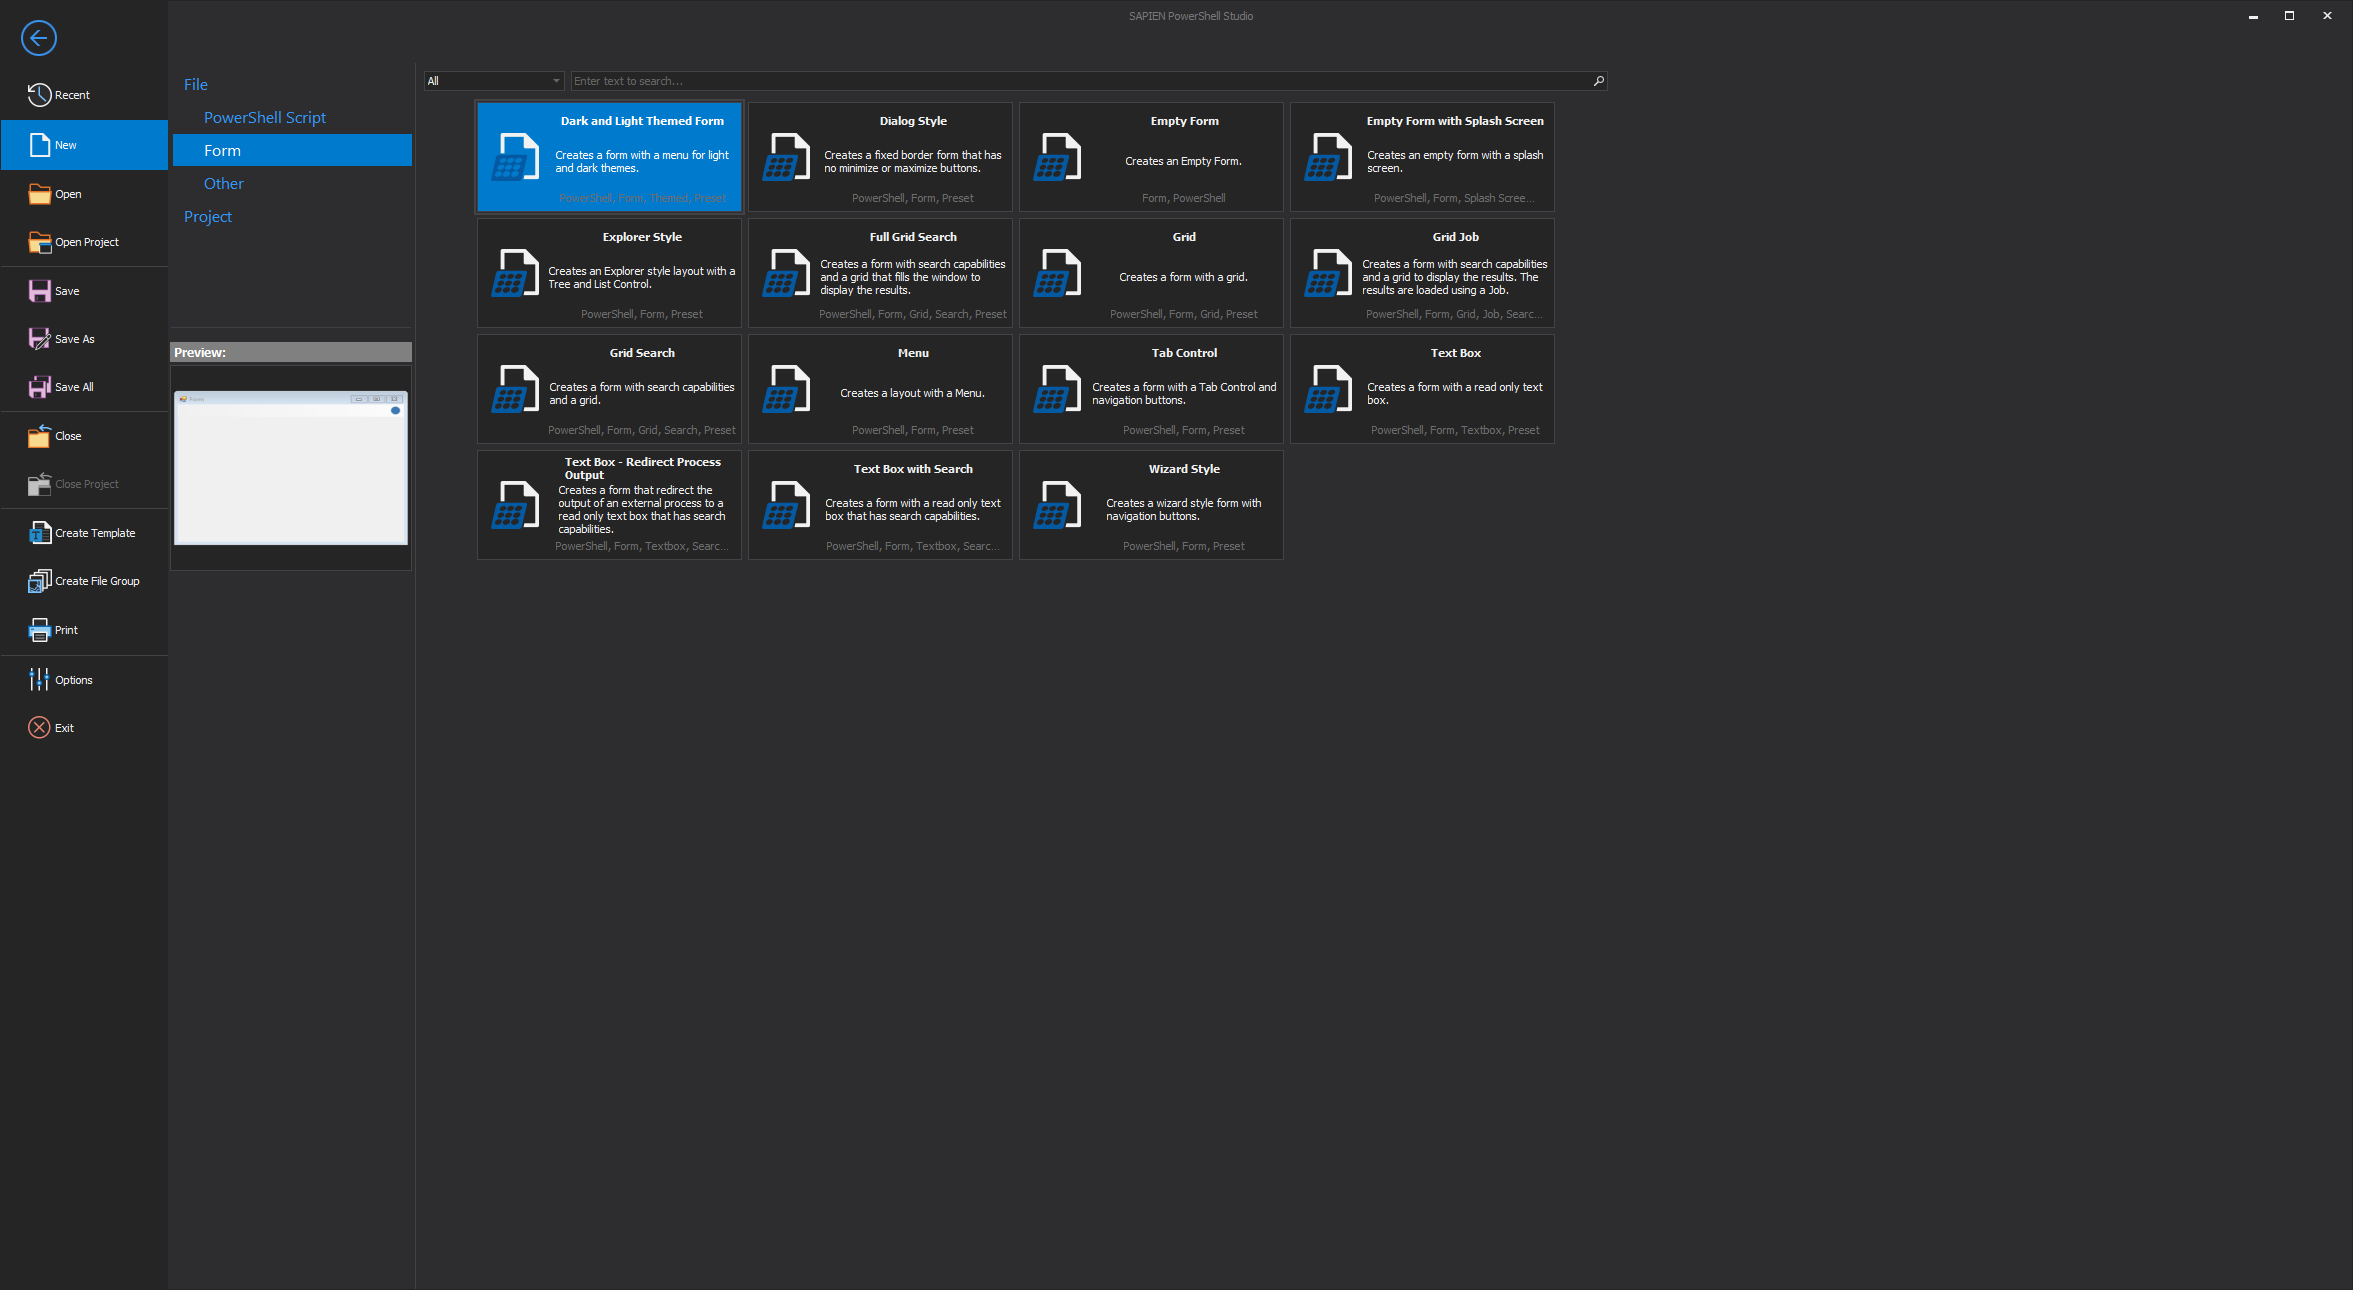 powershell studio